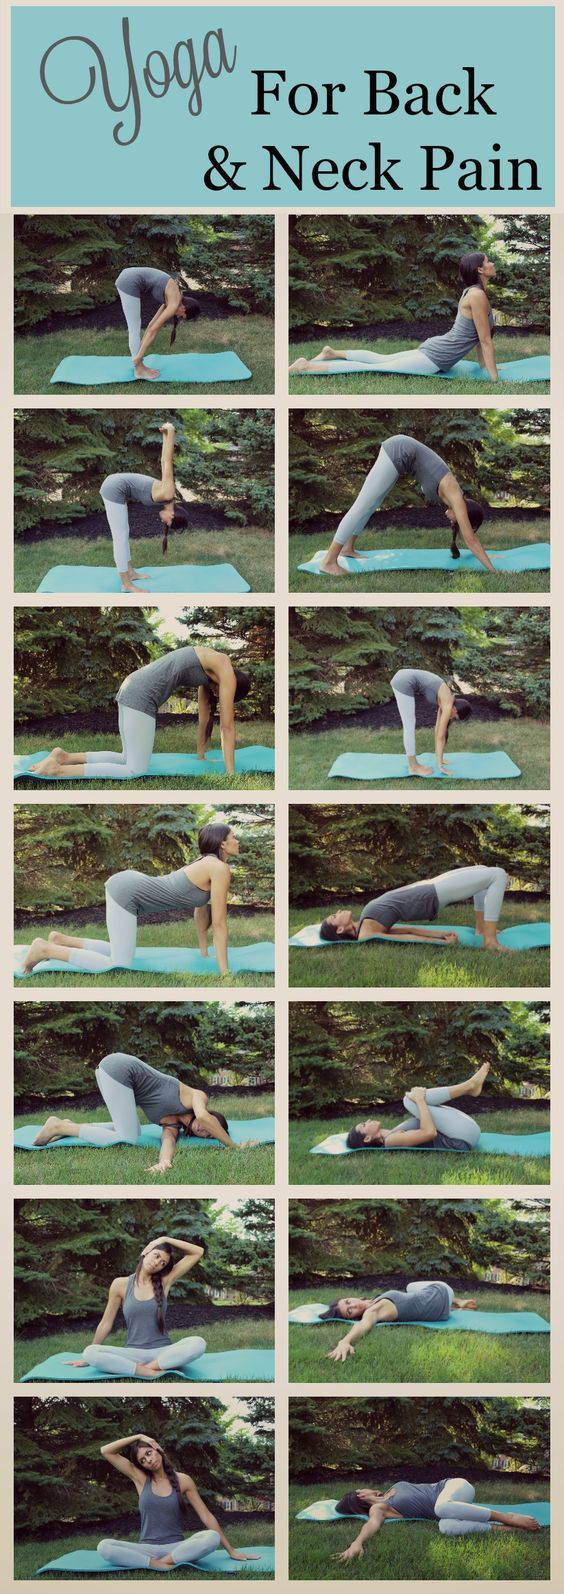 See how yoga keeps you young & healthy at the Downdog Diary Yoga Blog found exclusively at DownDog Boutique. See the original post here: Beauty, Decor & More Image courtesy of Journeys of Yoga saved to the DownDog Boutique Pinterest board